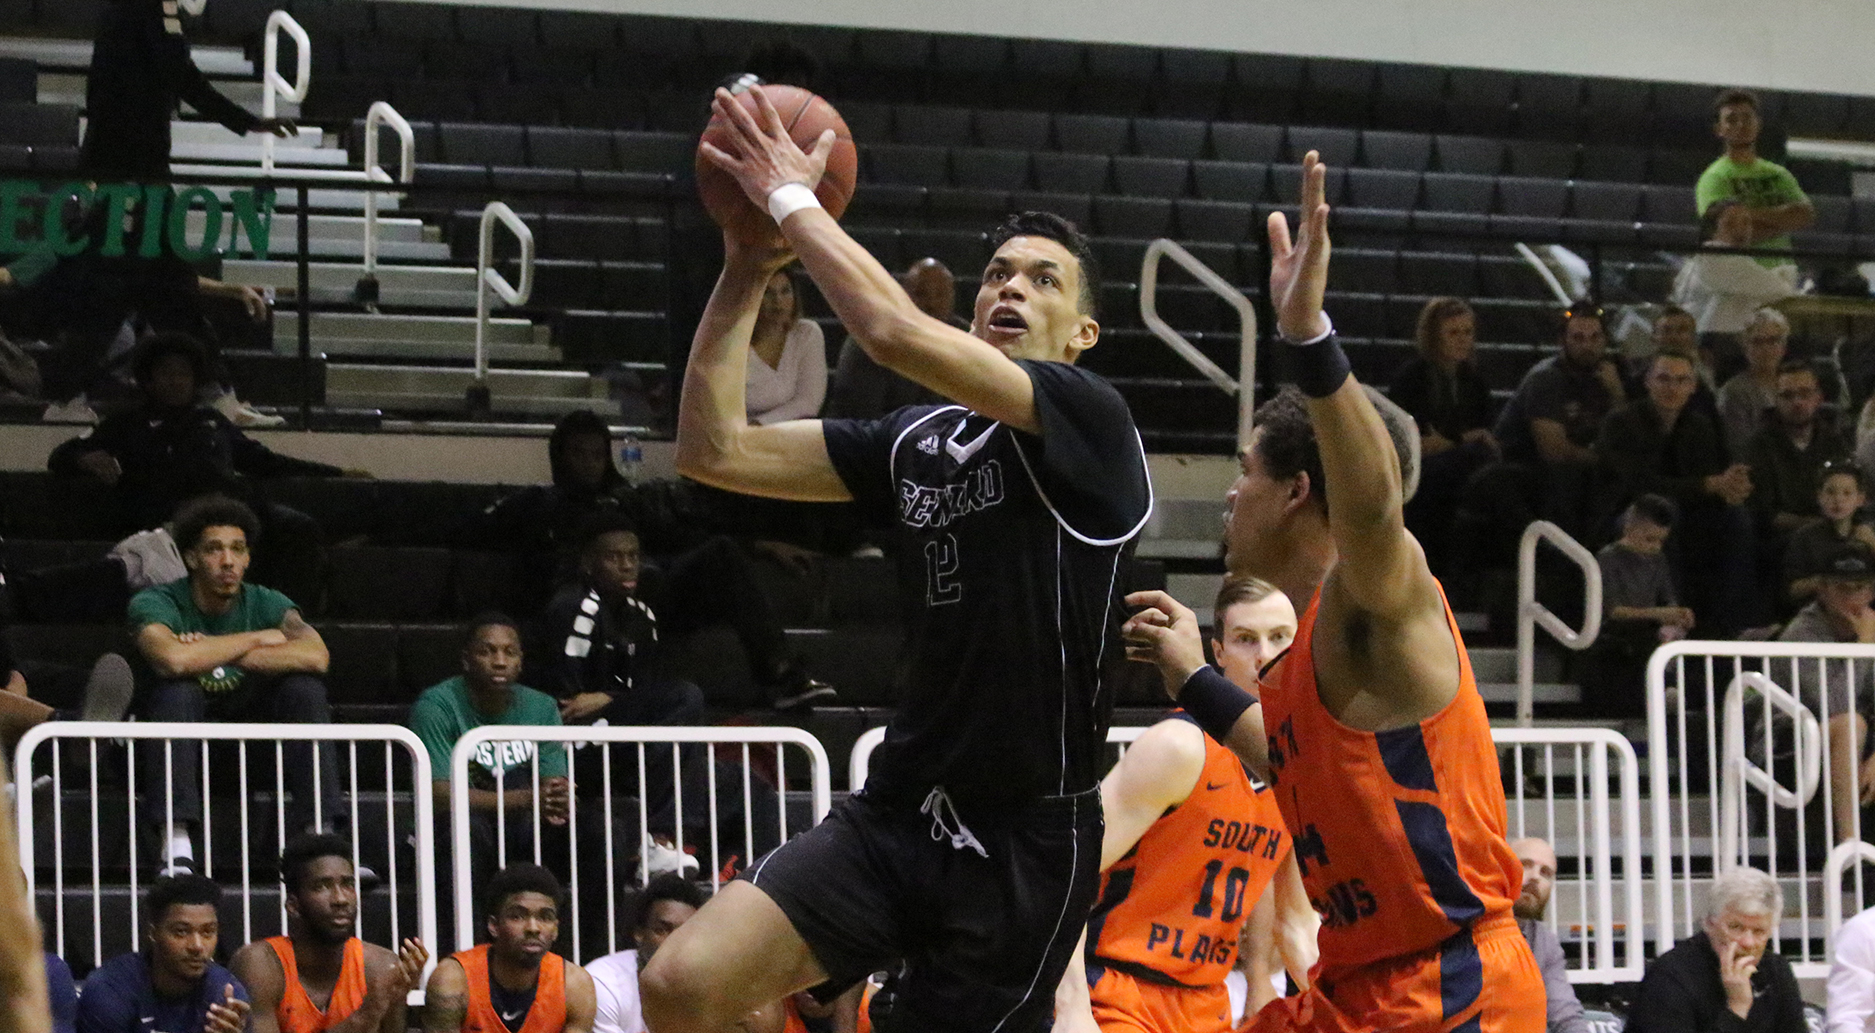 Saints Upset Bid Falls Short against No. 2 South Plains